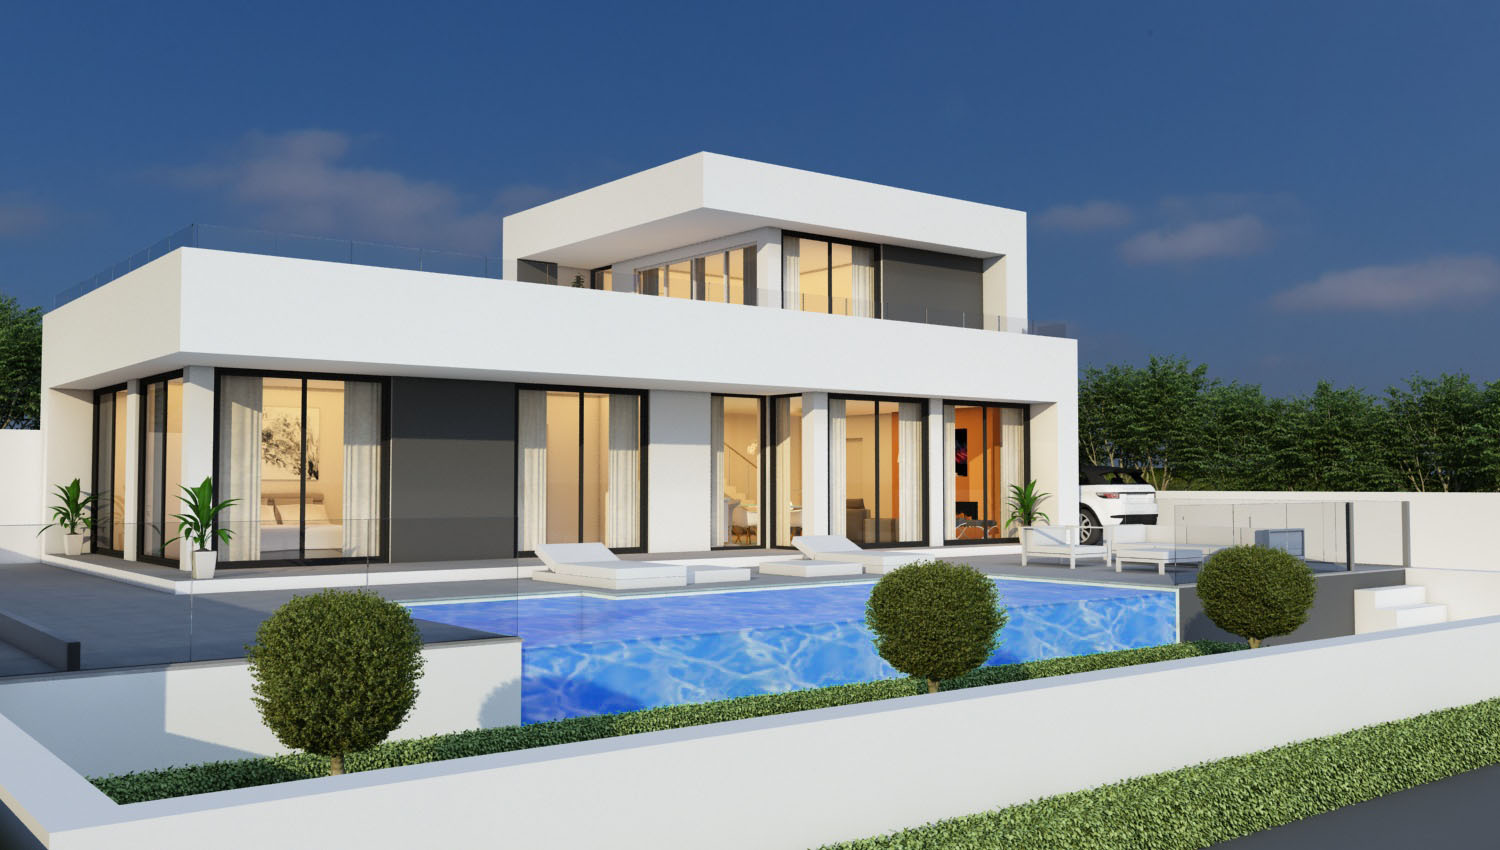 3 bedroom villa for sale in altea girasol homes belgium for 9 bedroom homes for sale